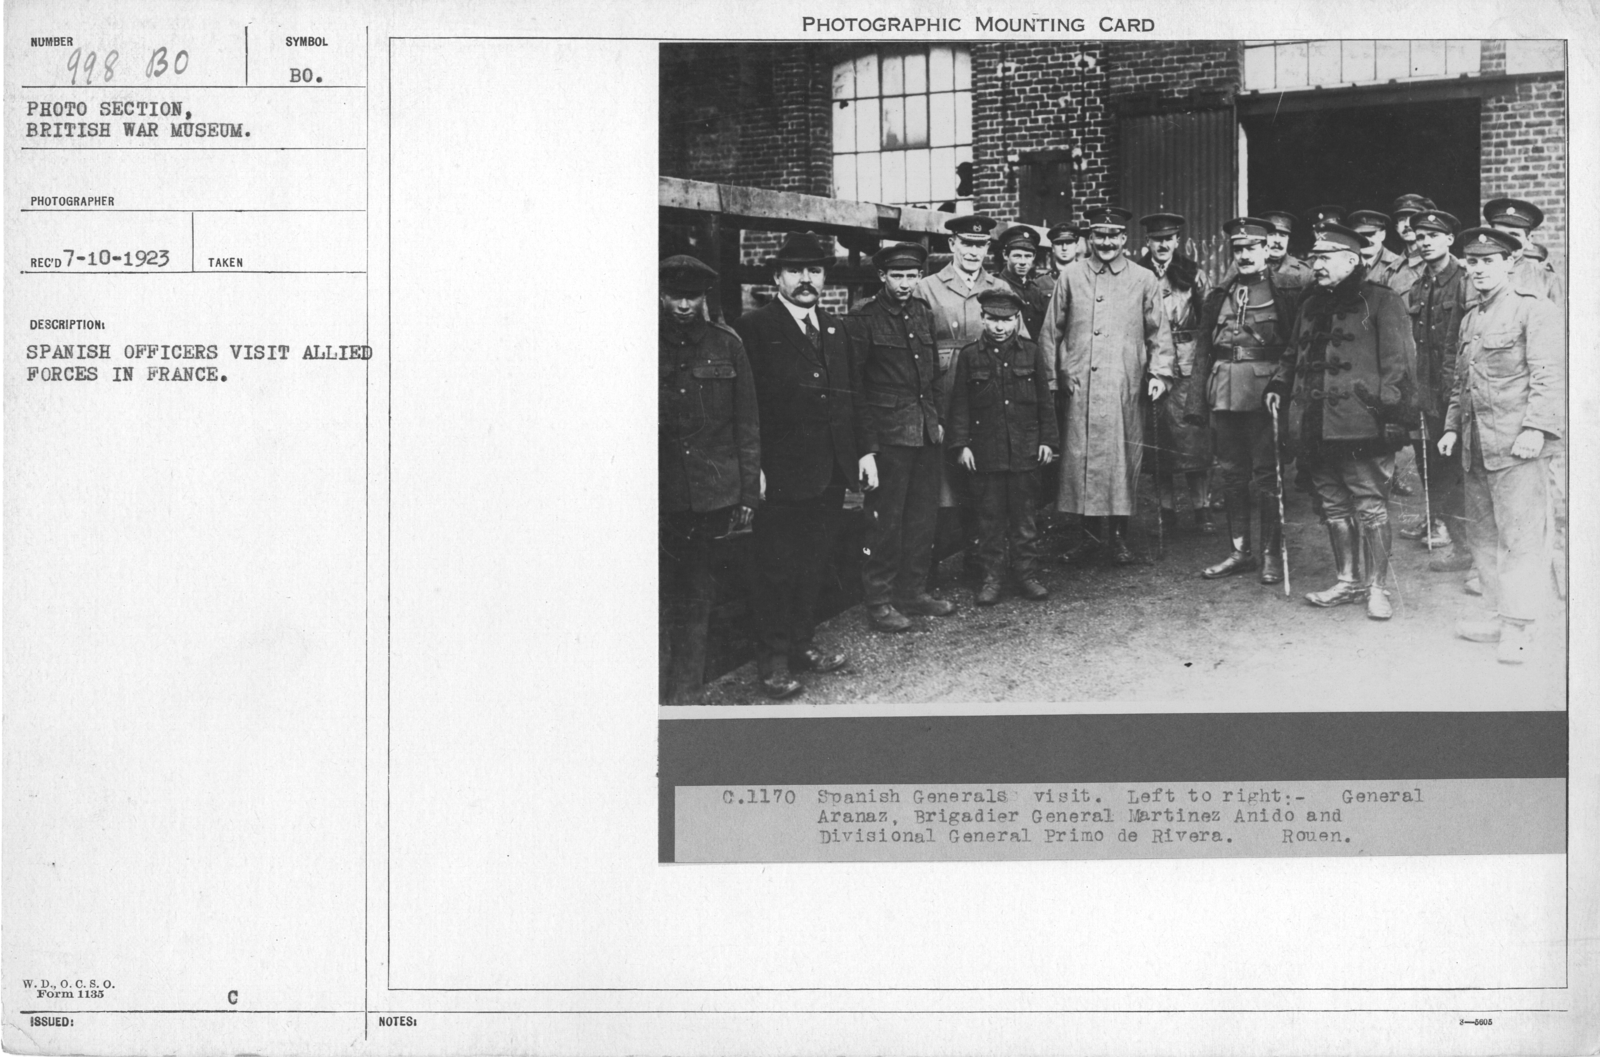 Spanish officers visit allied forces in France